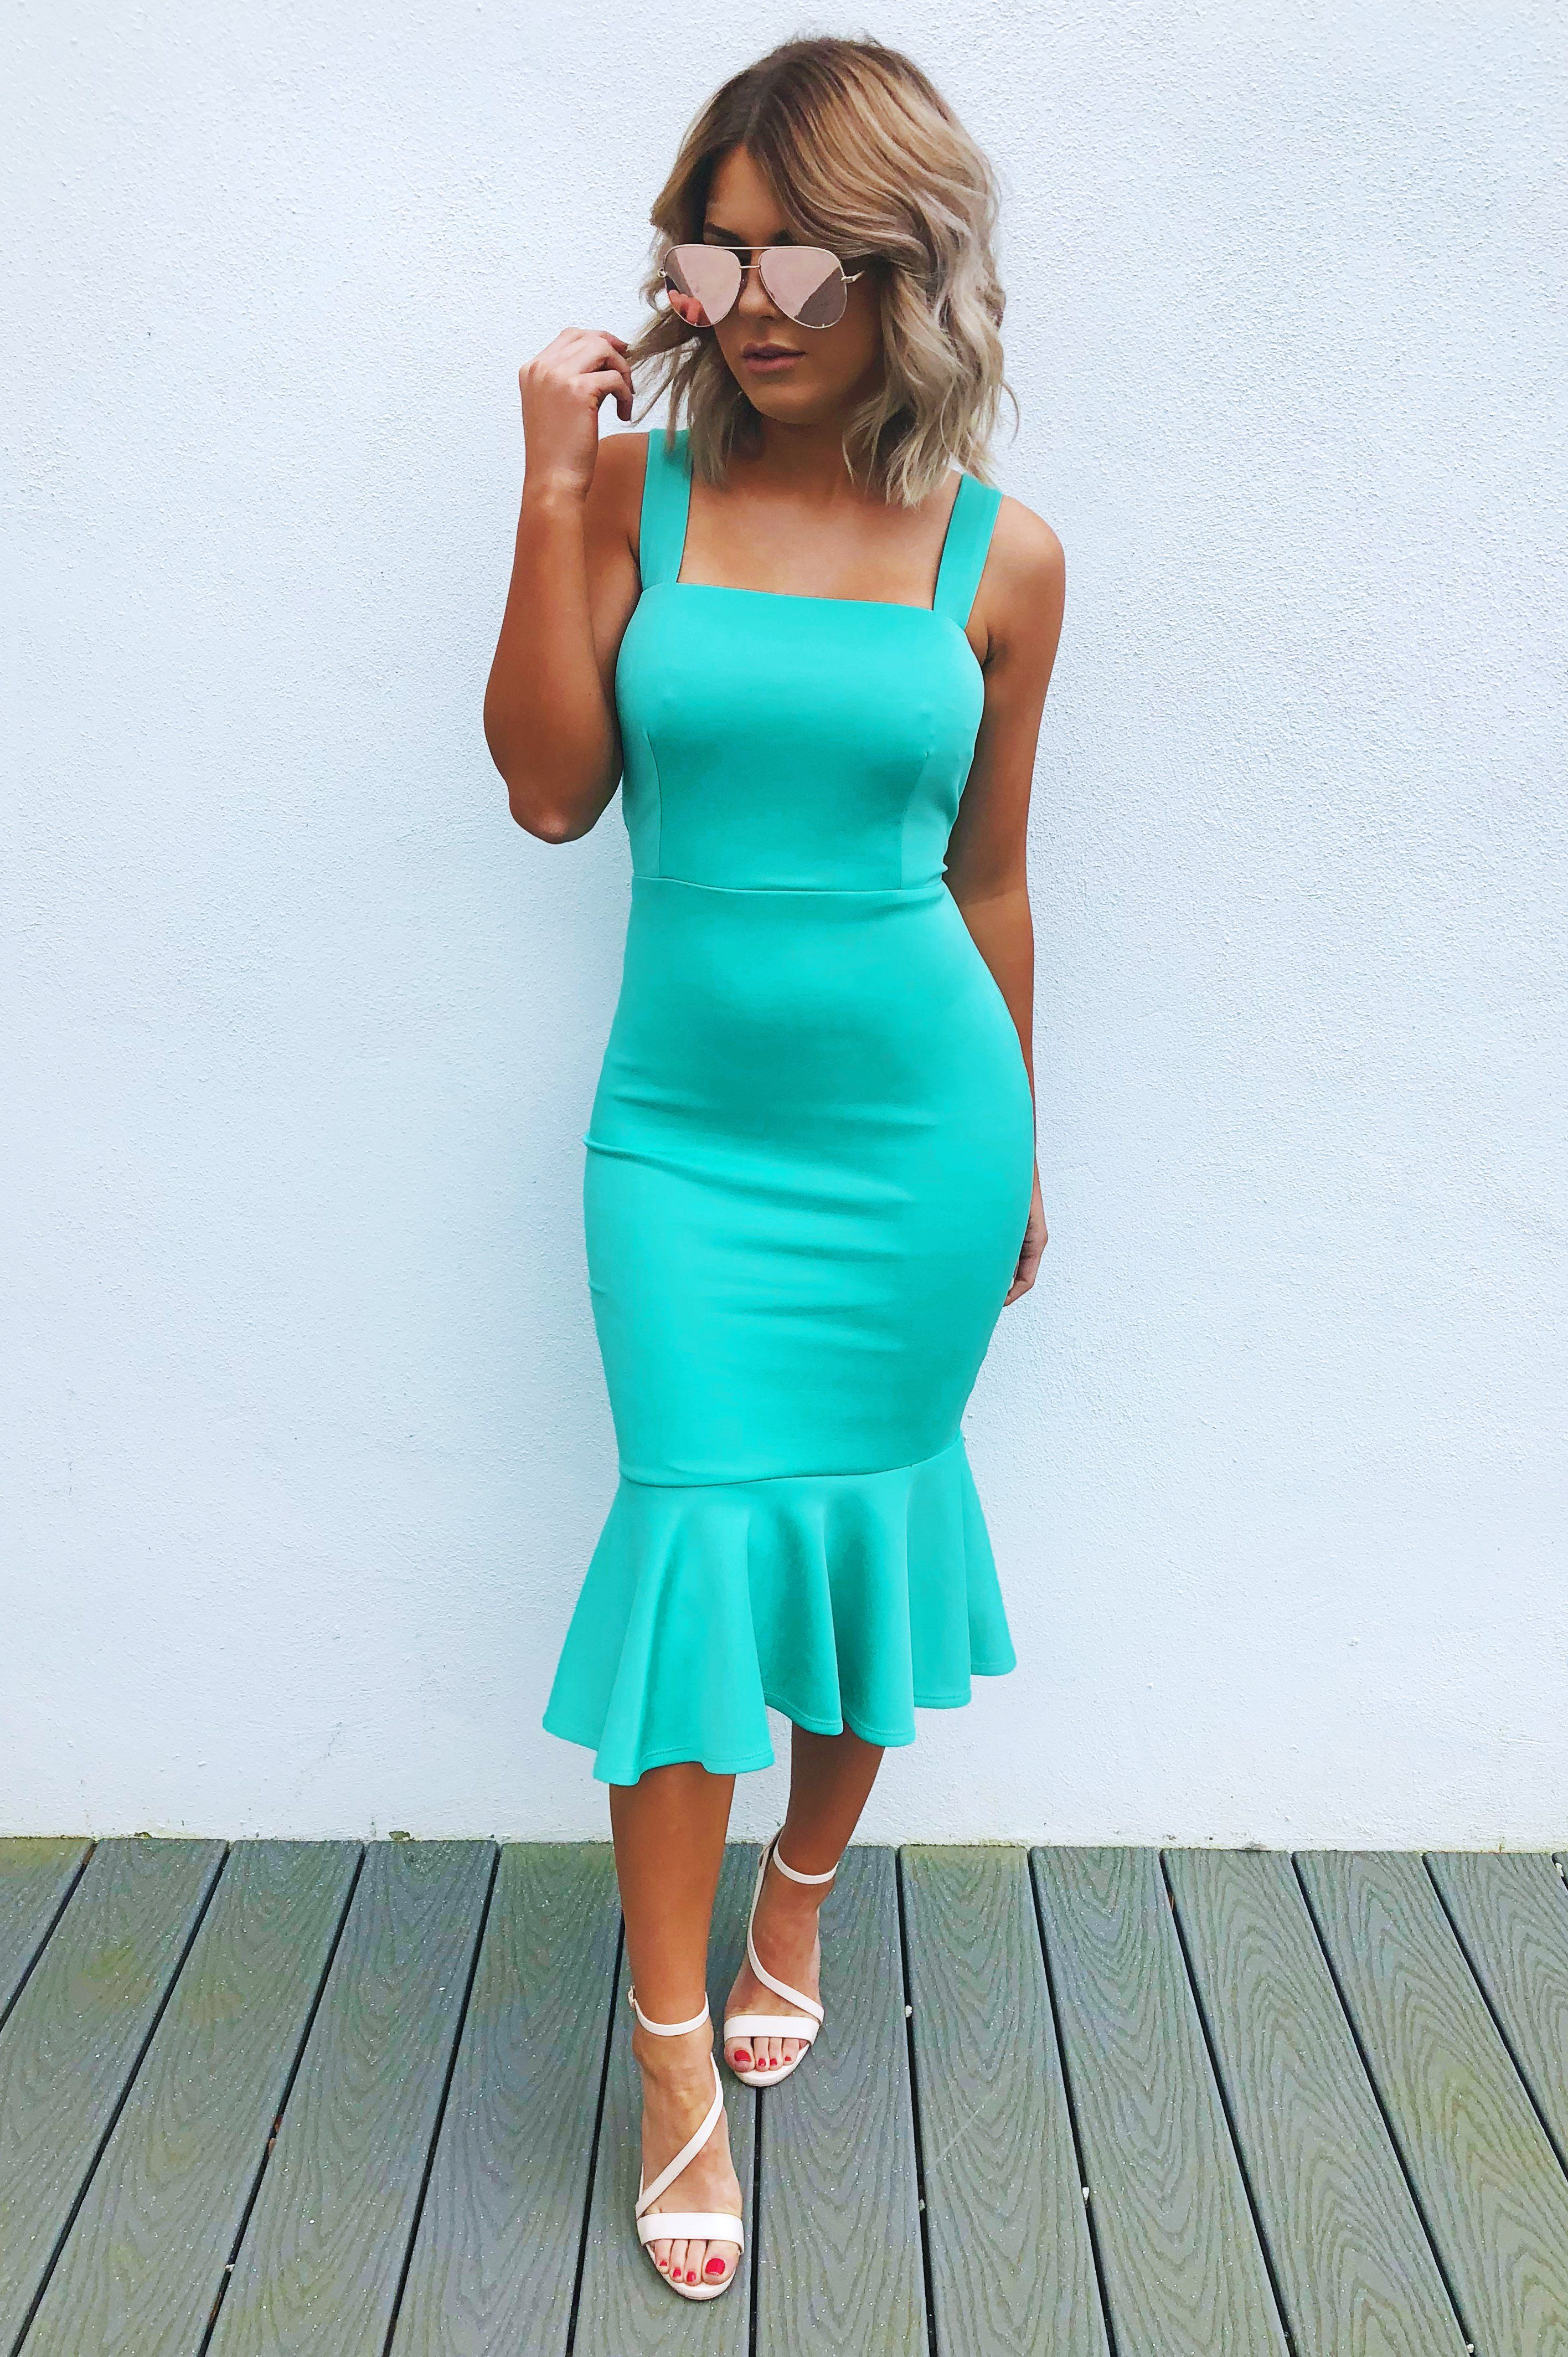 Share To Save 10 On Your Order Instantly Hollywood Nights Dress Turquoise Night Dress Dresses Dressy Outfits [ 4256 x 2832 Pixel ]